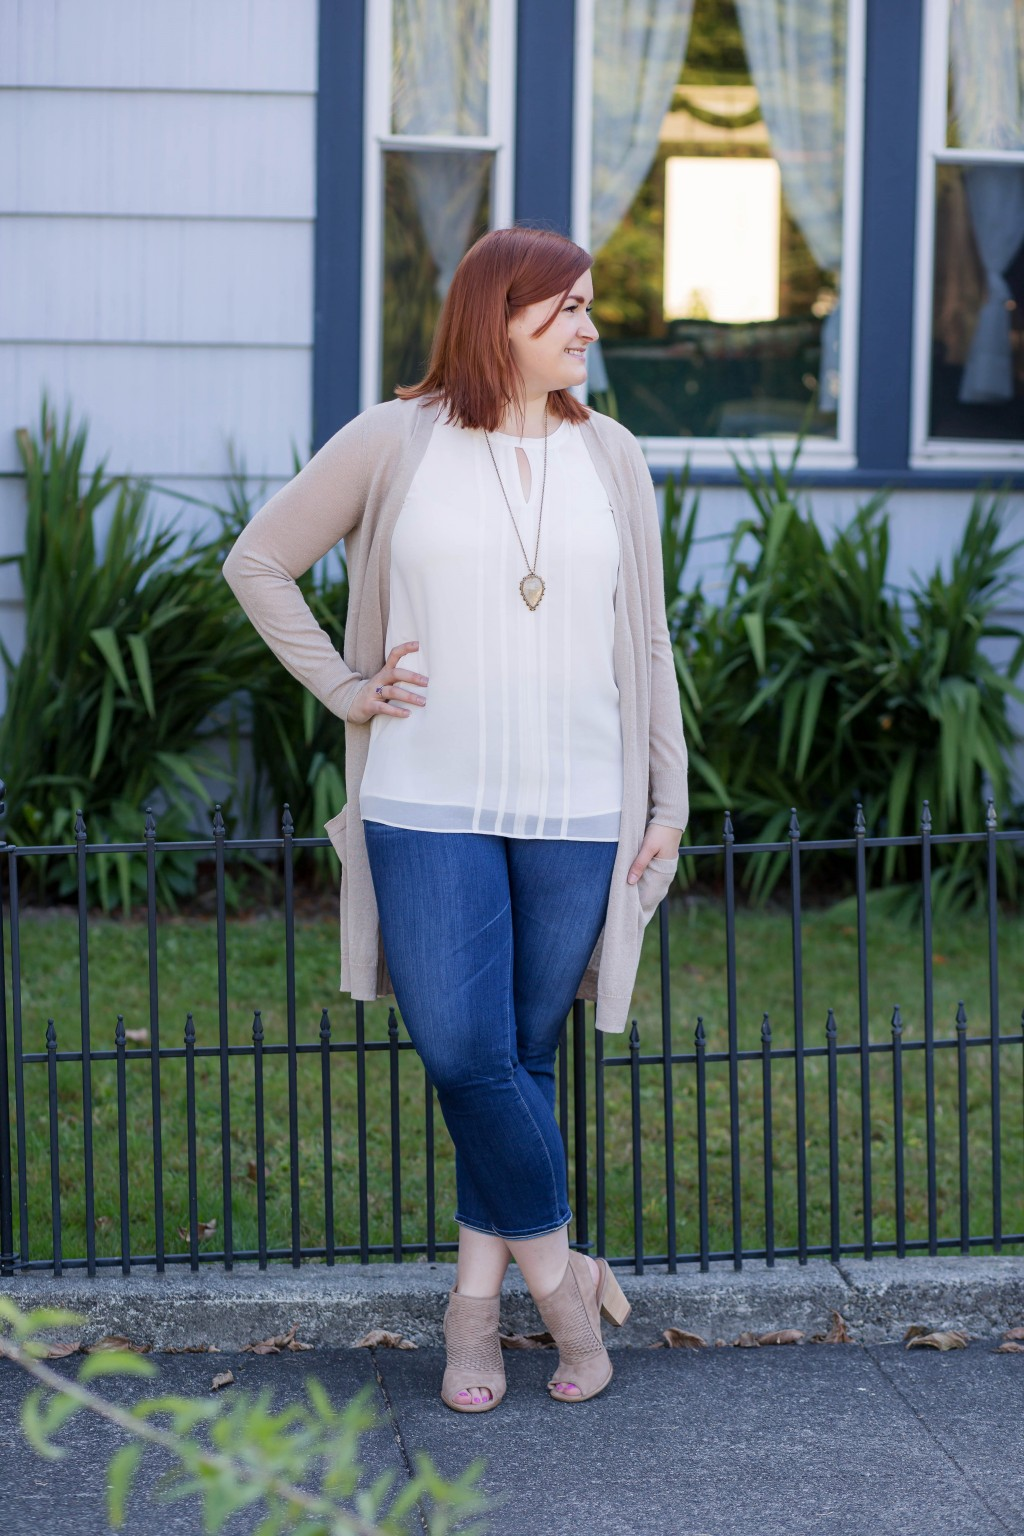 1-kate-retherford-of-all-things-kate-in-neutral-fall-style